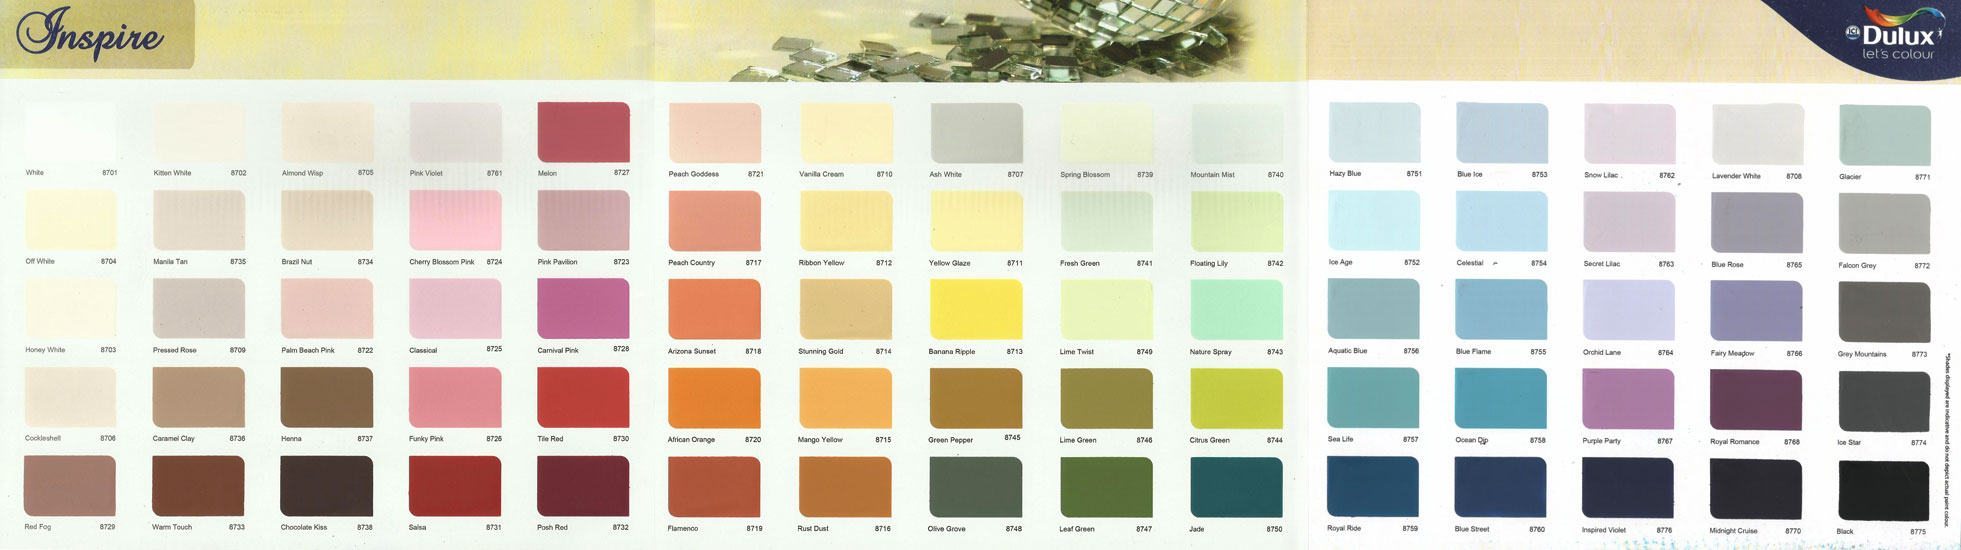 Nerolac Paints Color Chart Creative Ideas About Interior And Furniture